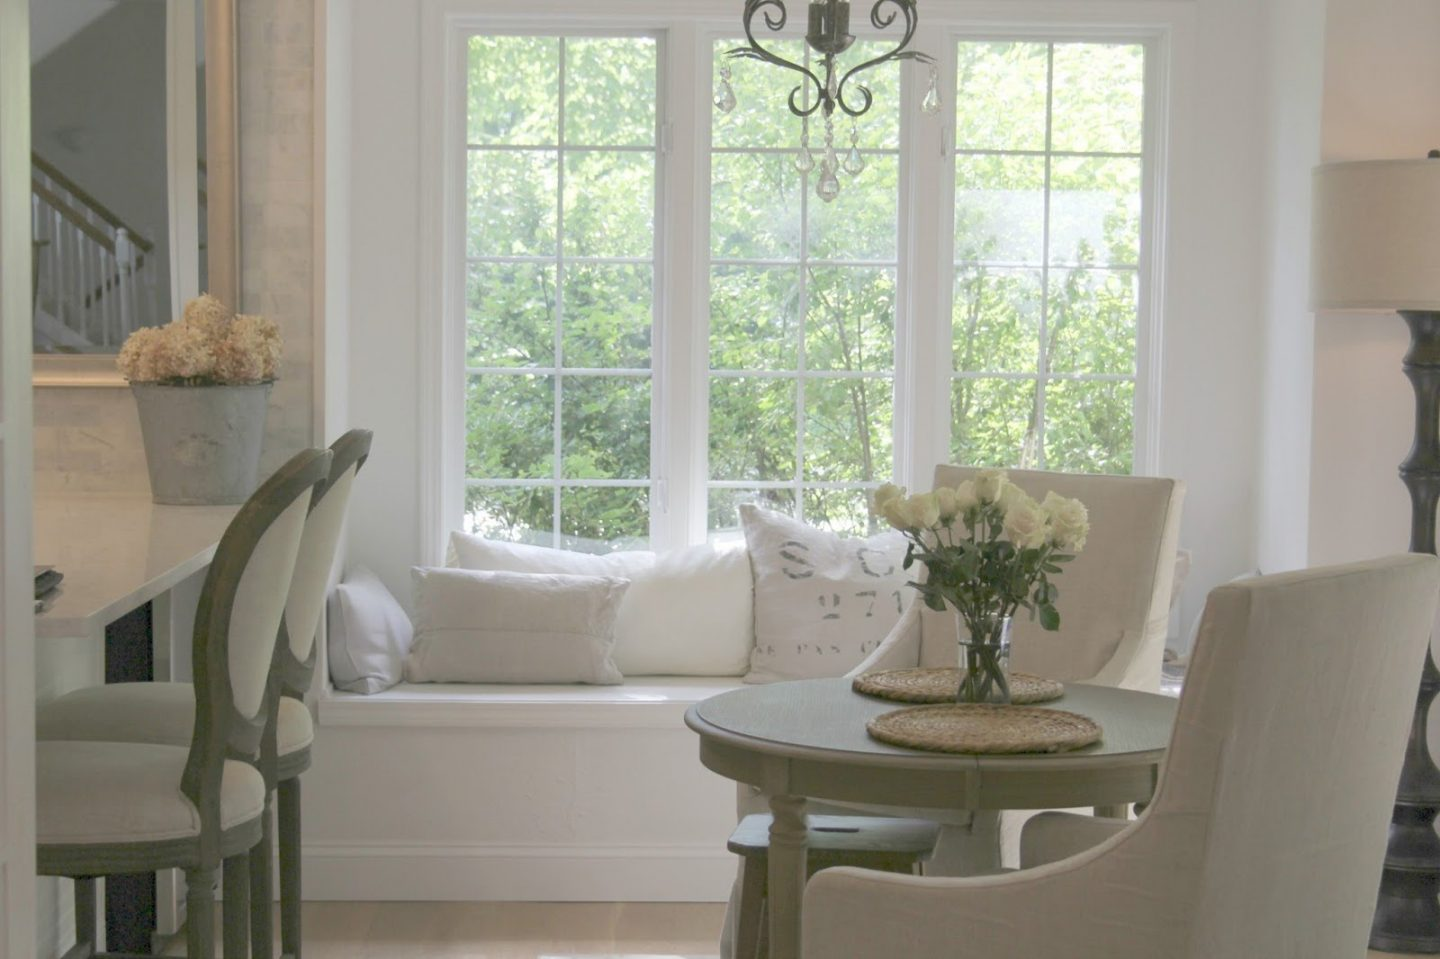 Serene white kitchen with European inspired decor. Window seat with linen pillows, slipcovered arm chairs, and romantic French Country charm. #whitekitchen #windowseat #kitchendecor #belgianlinen #frenchcountry #hellolovelystudio